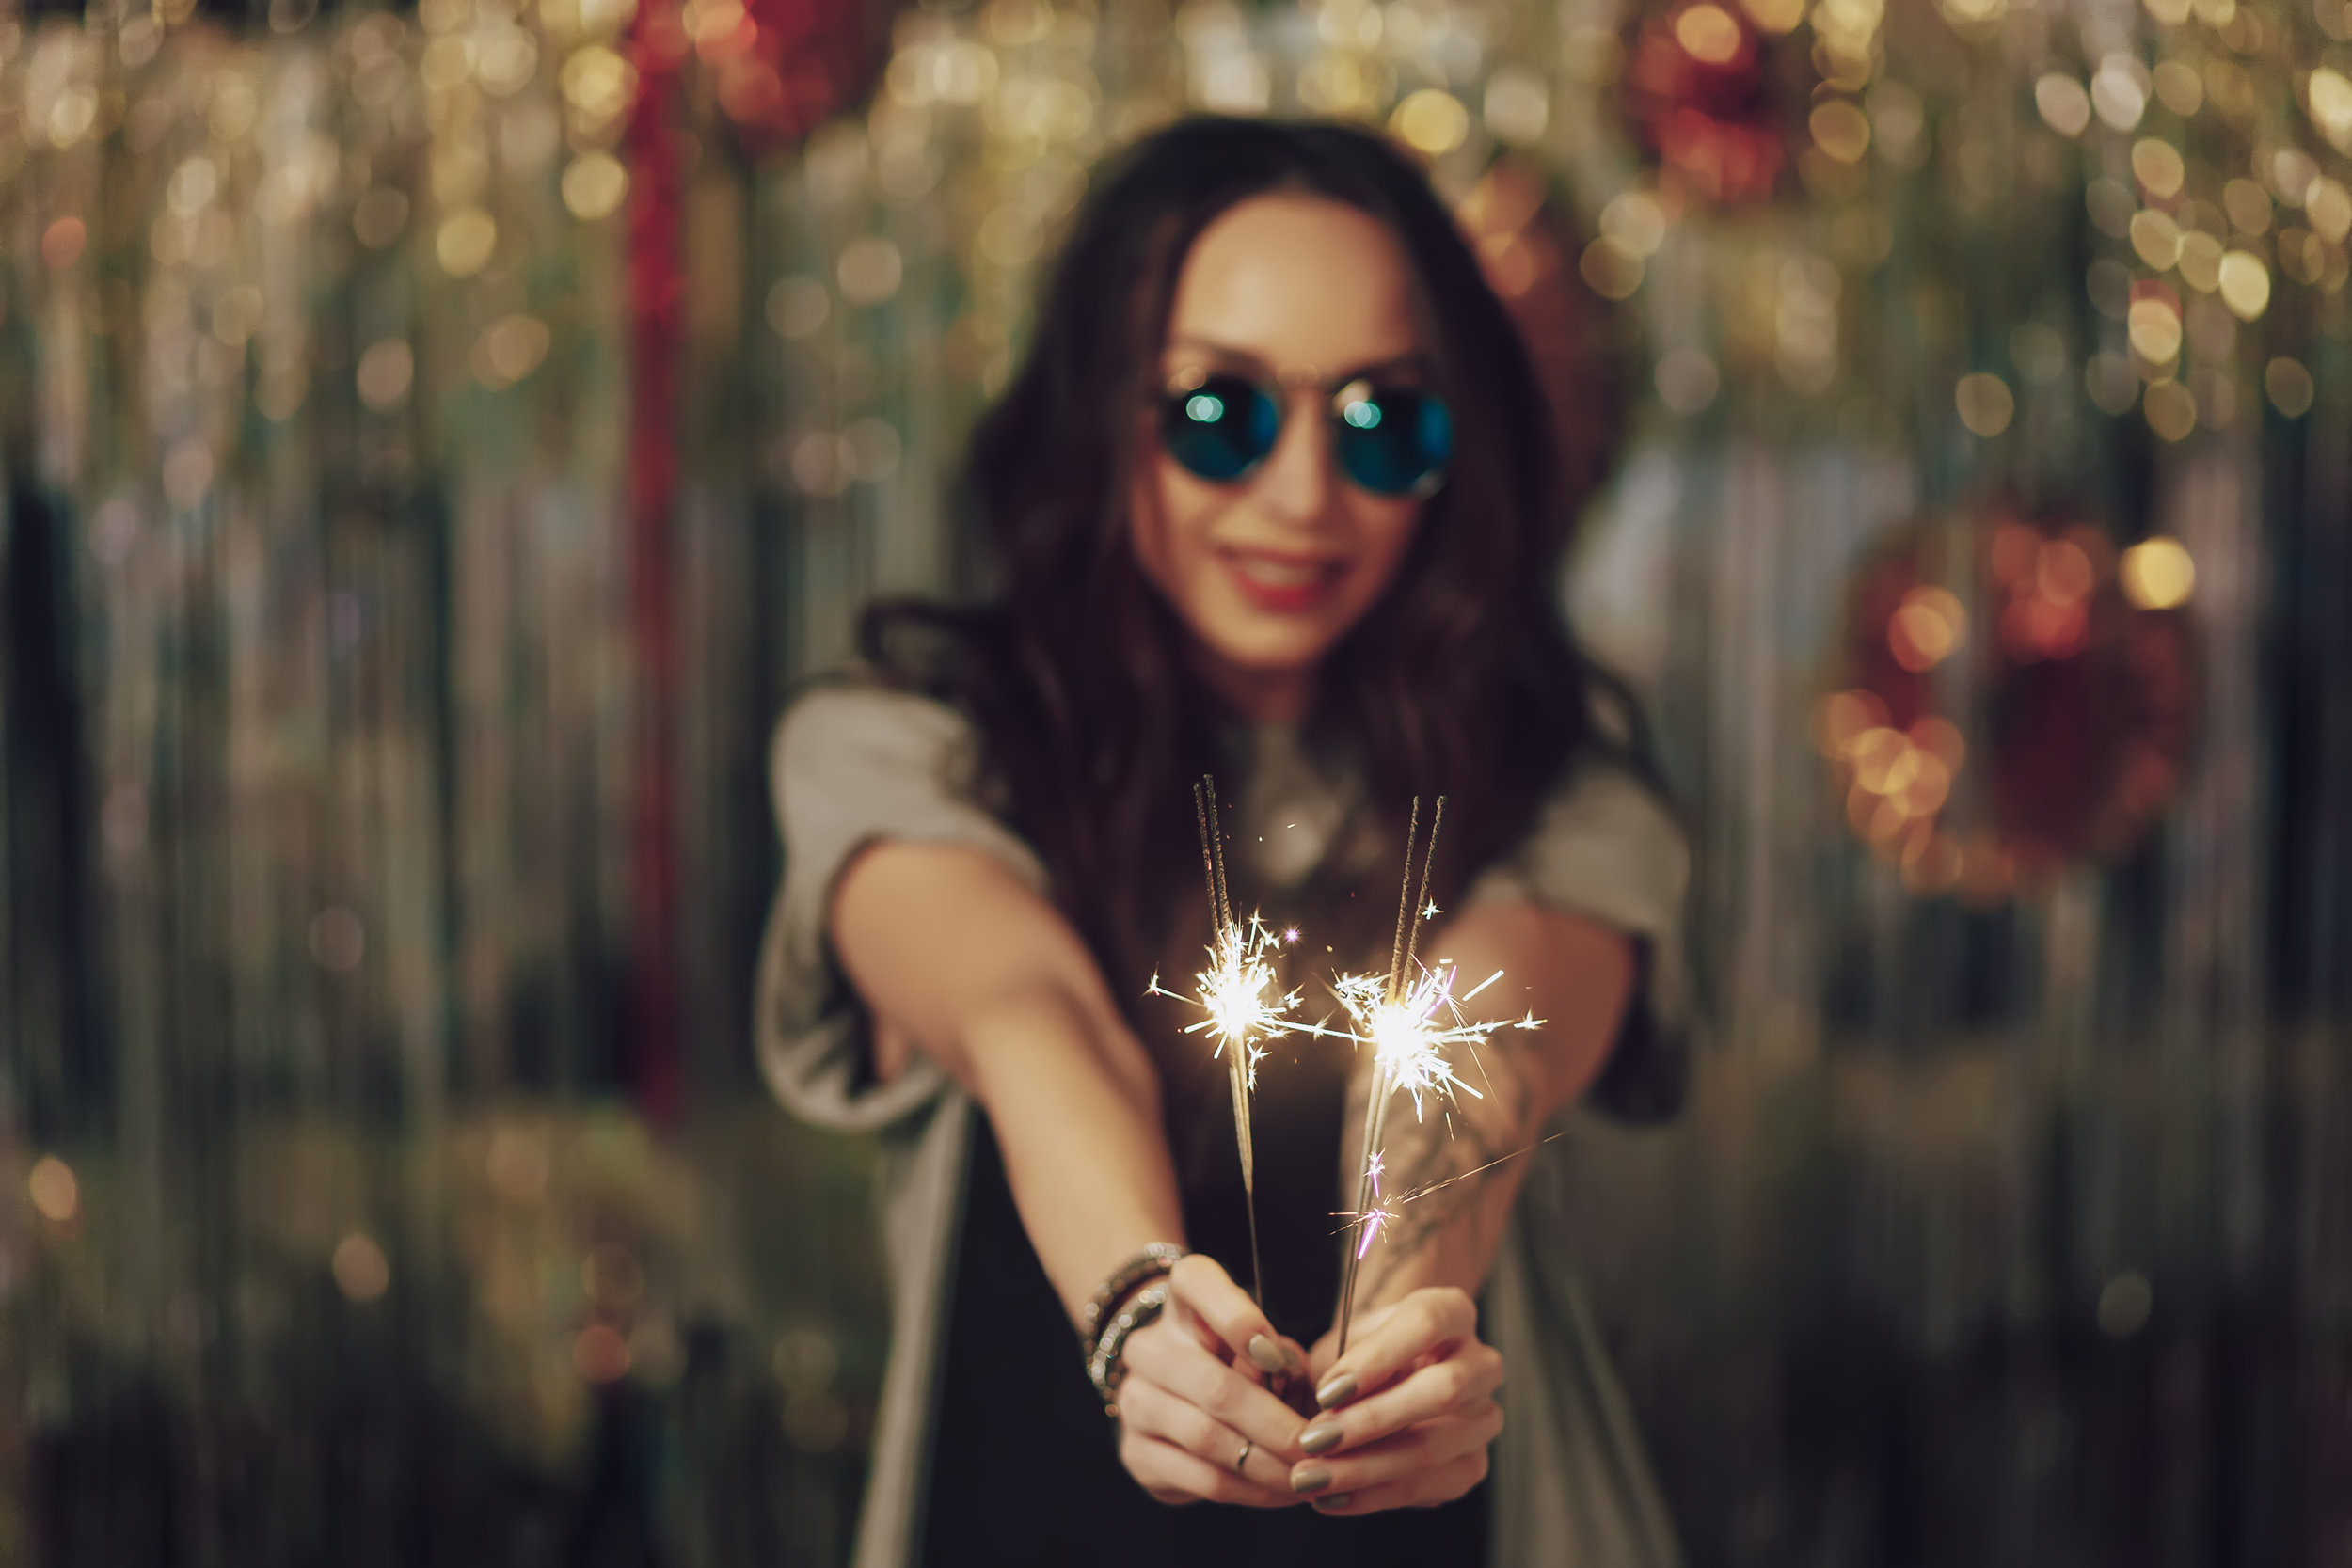 focus-on-woman-hands-holding-sparklers-PPYQHGC.jpg